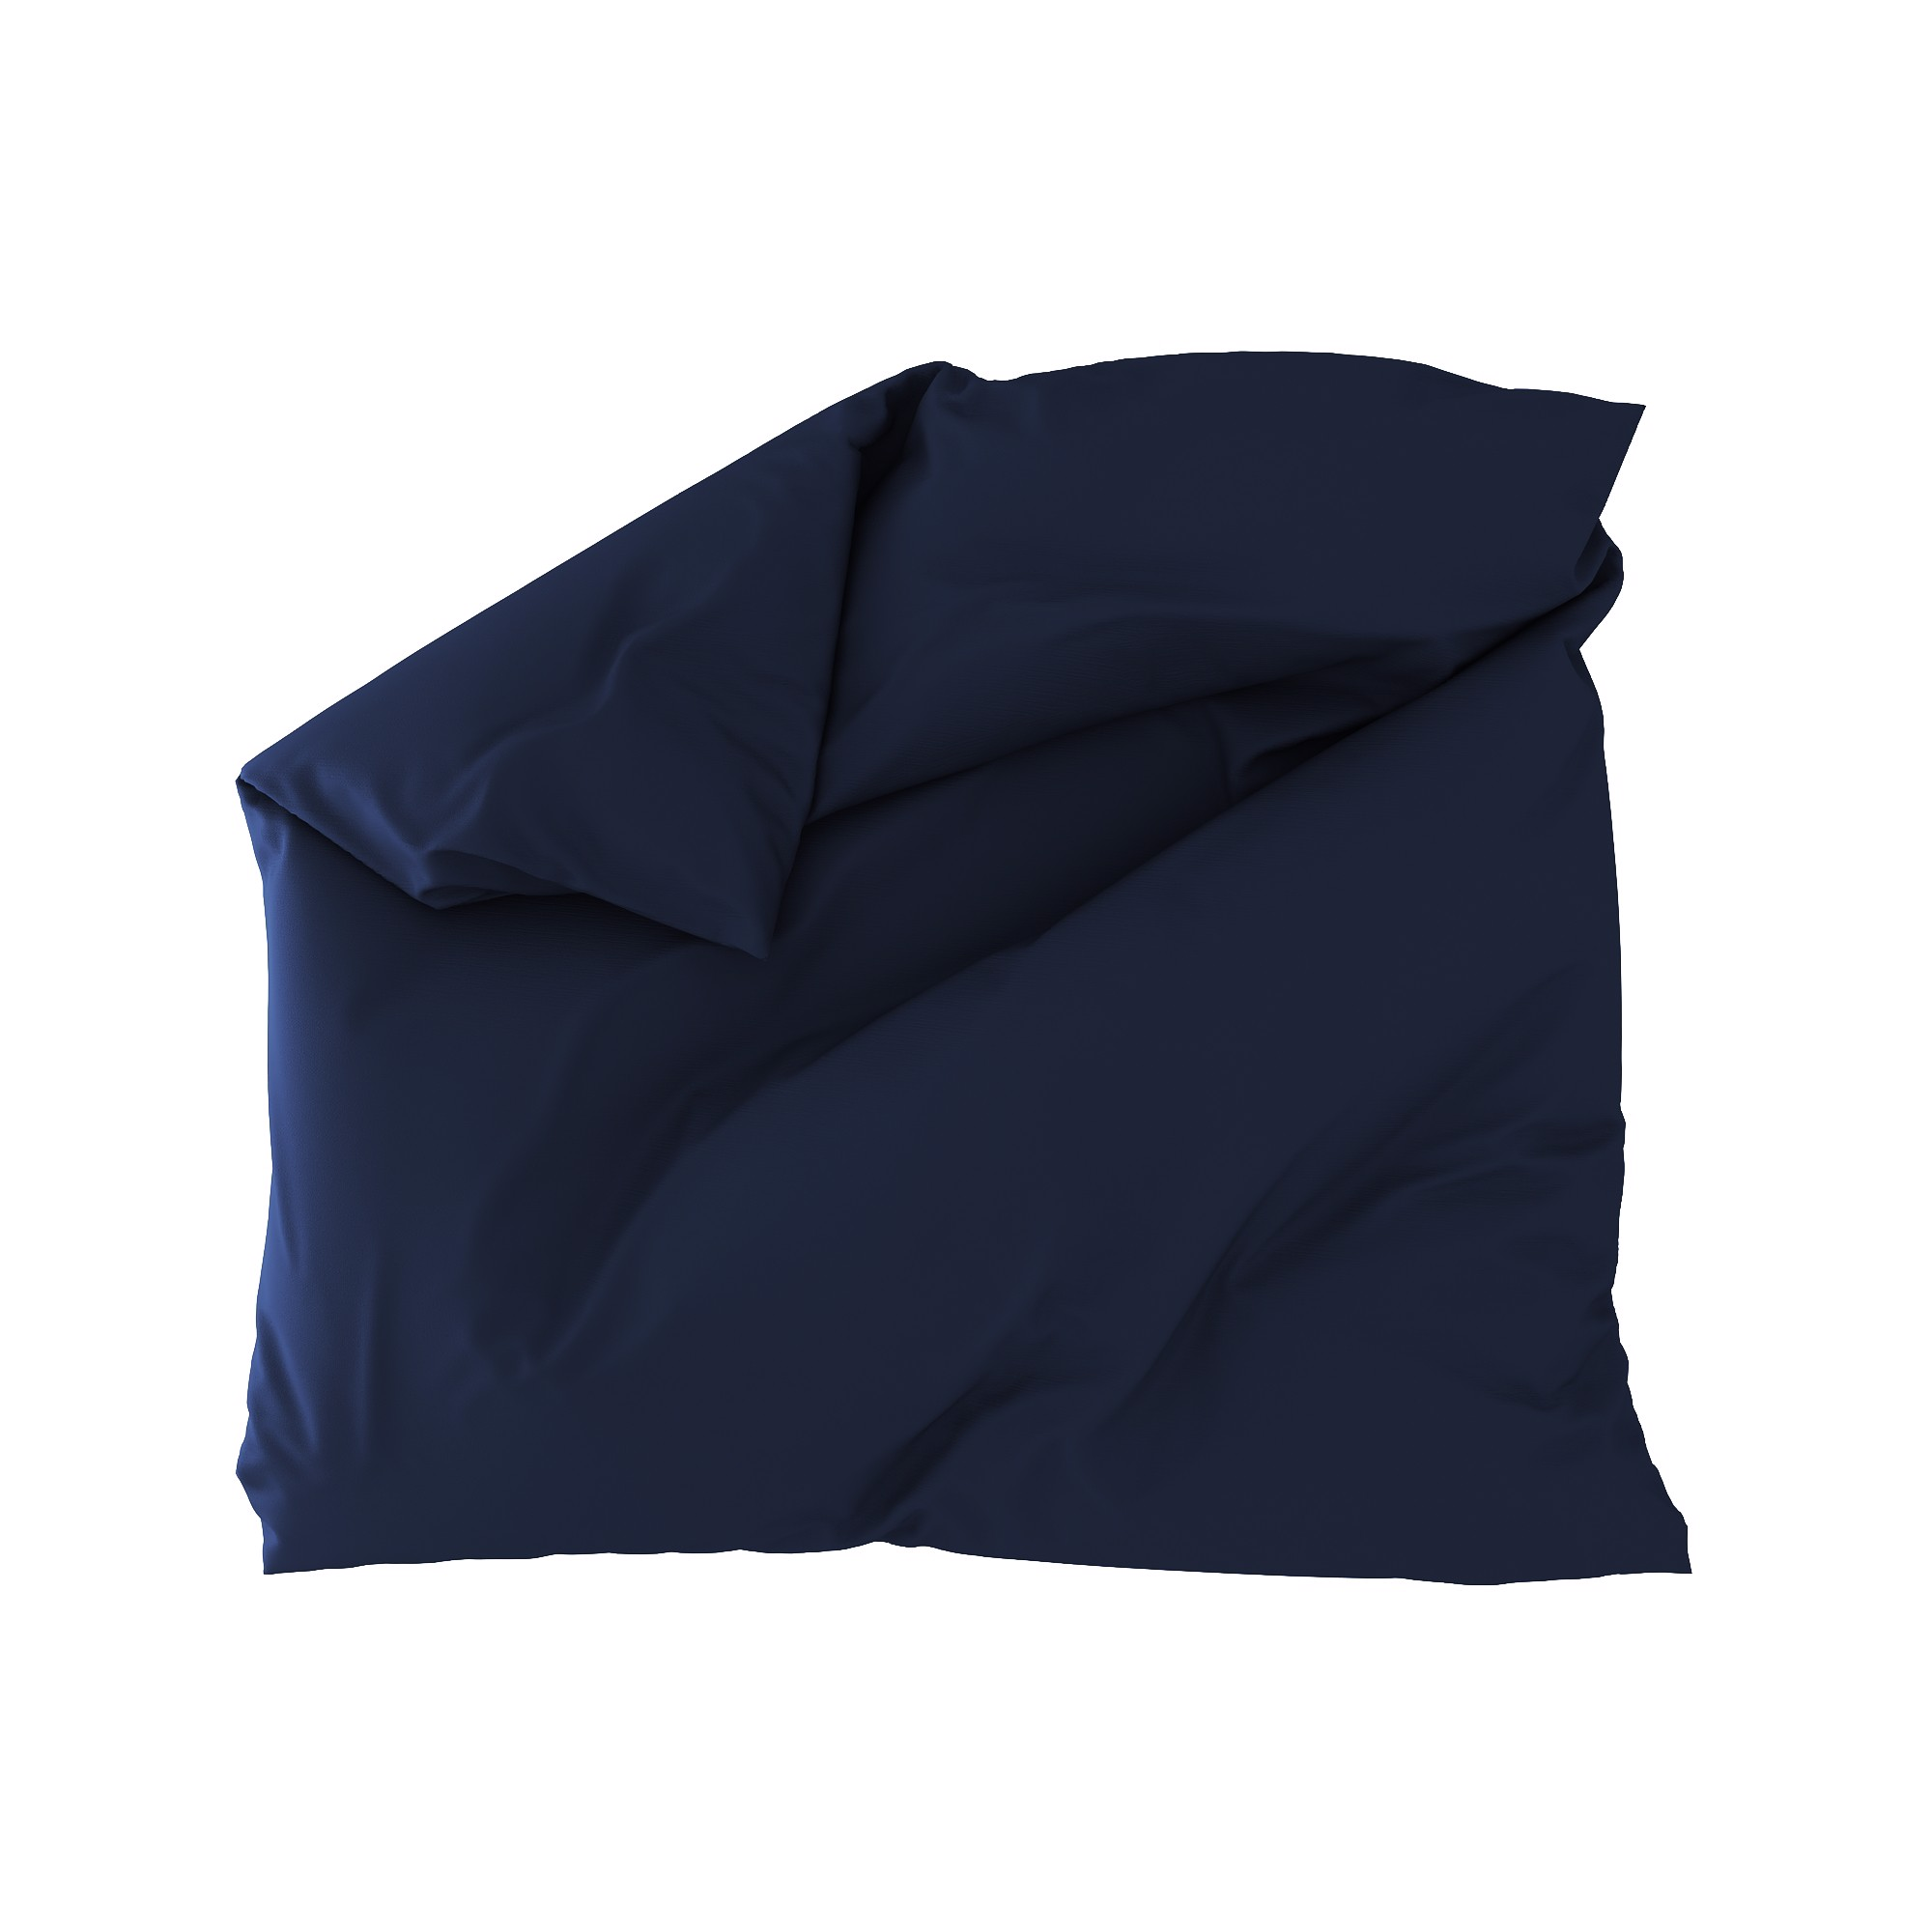 Standard duvet cover 22 Navy blue